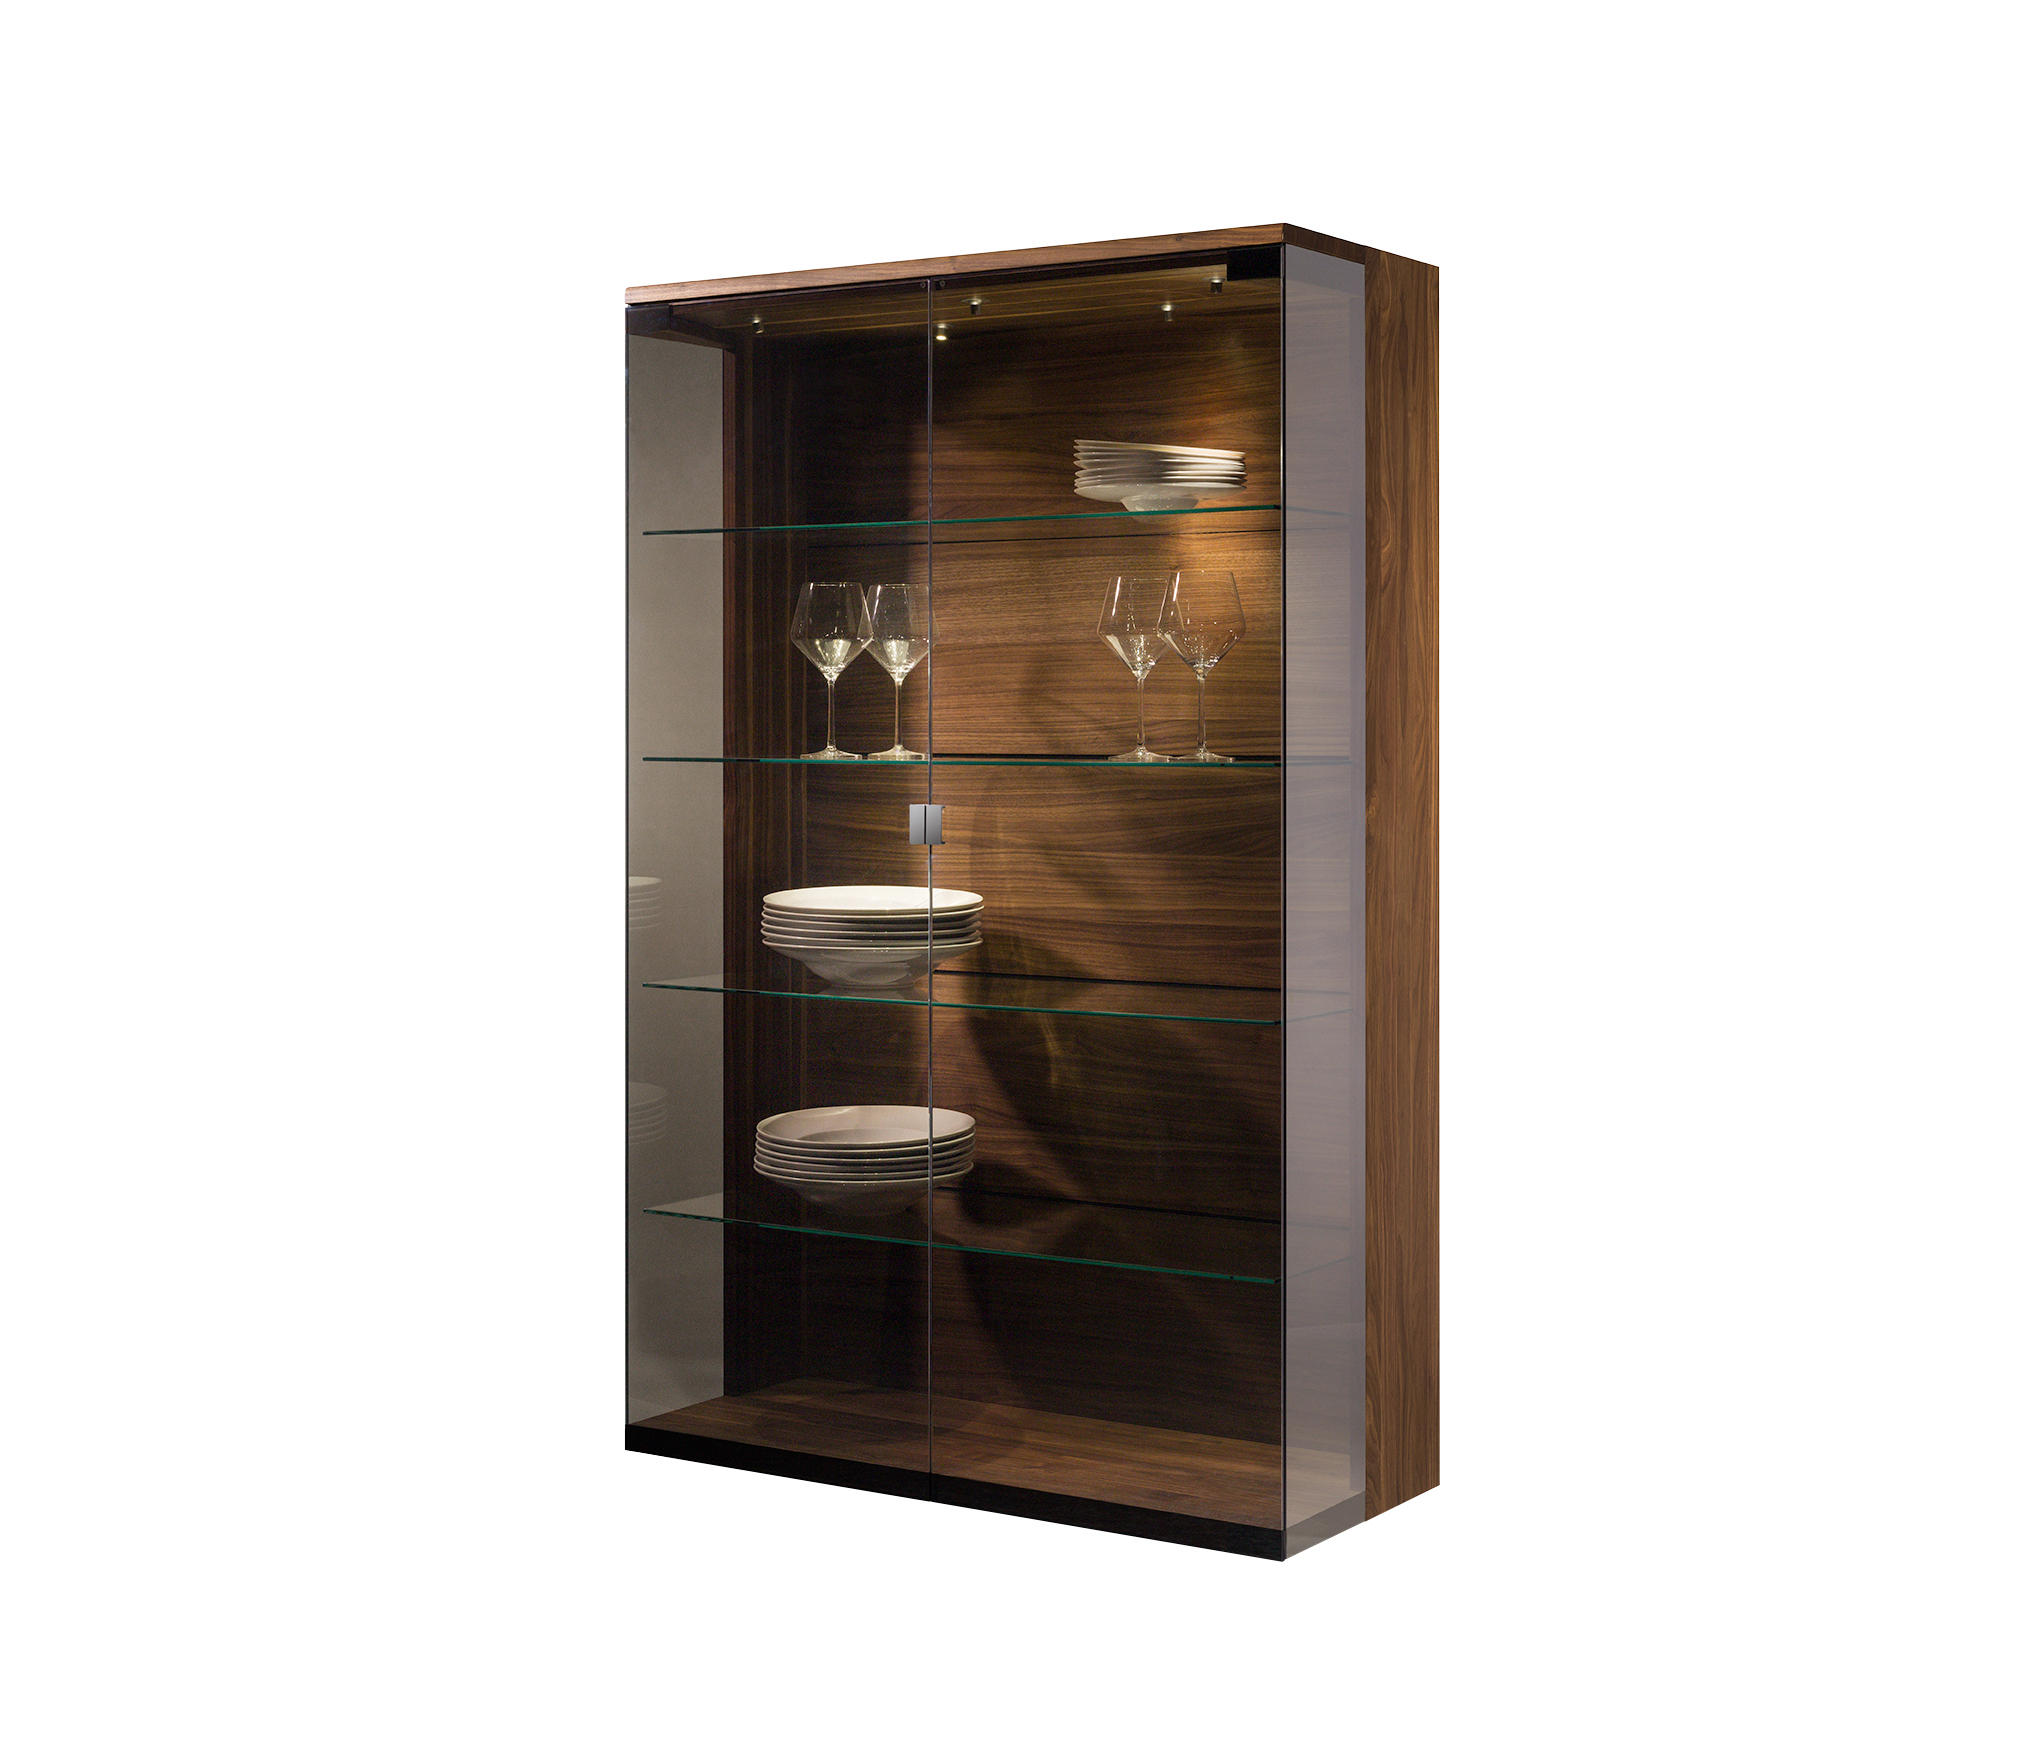 nox sideboard display cabinets from team 7 architonic. Black Bedroom Furniture Sets. Home Design Ideas